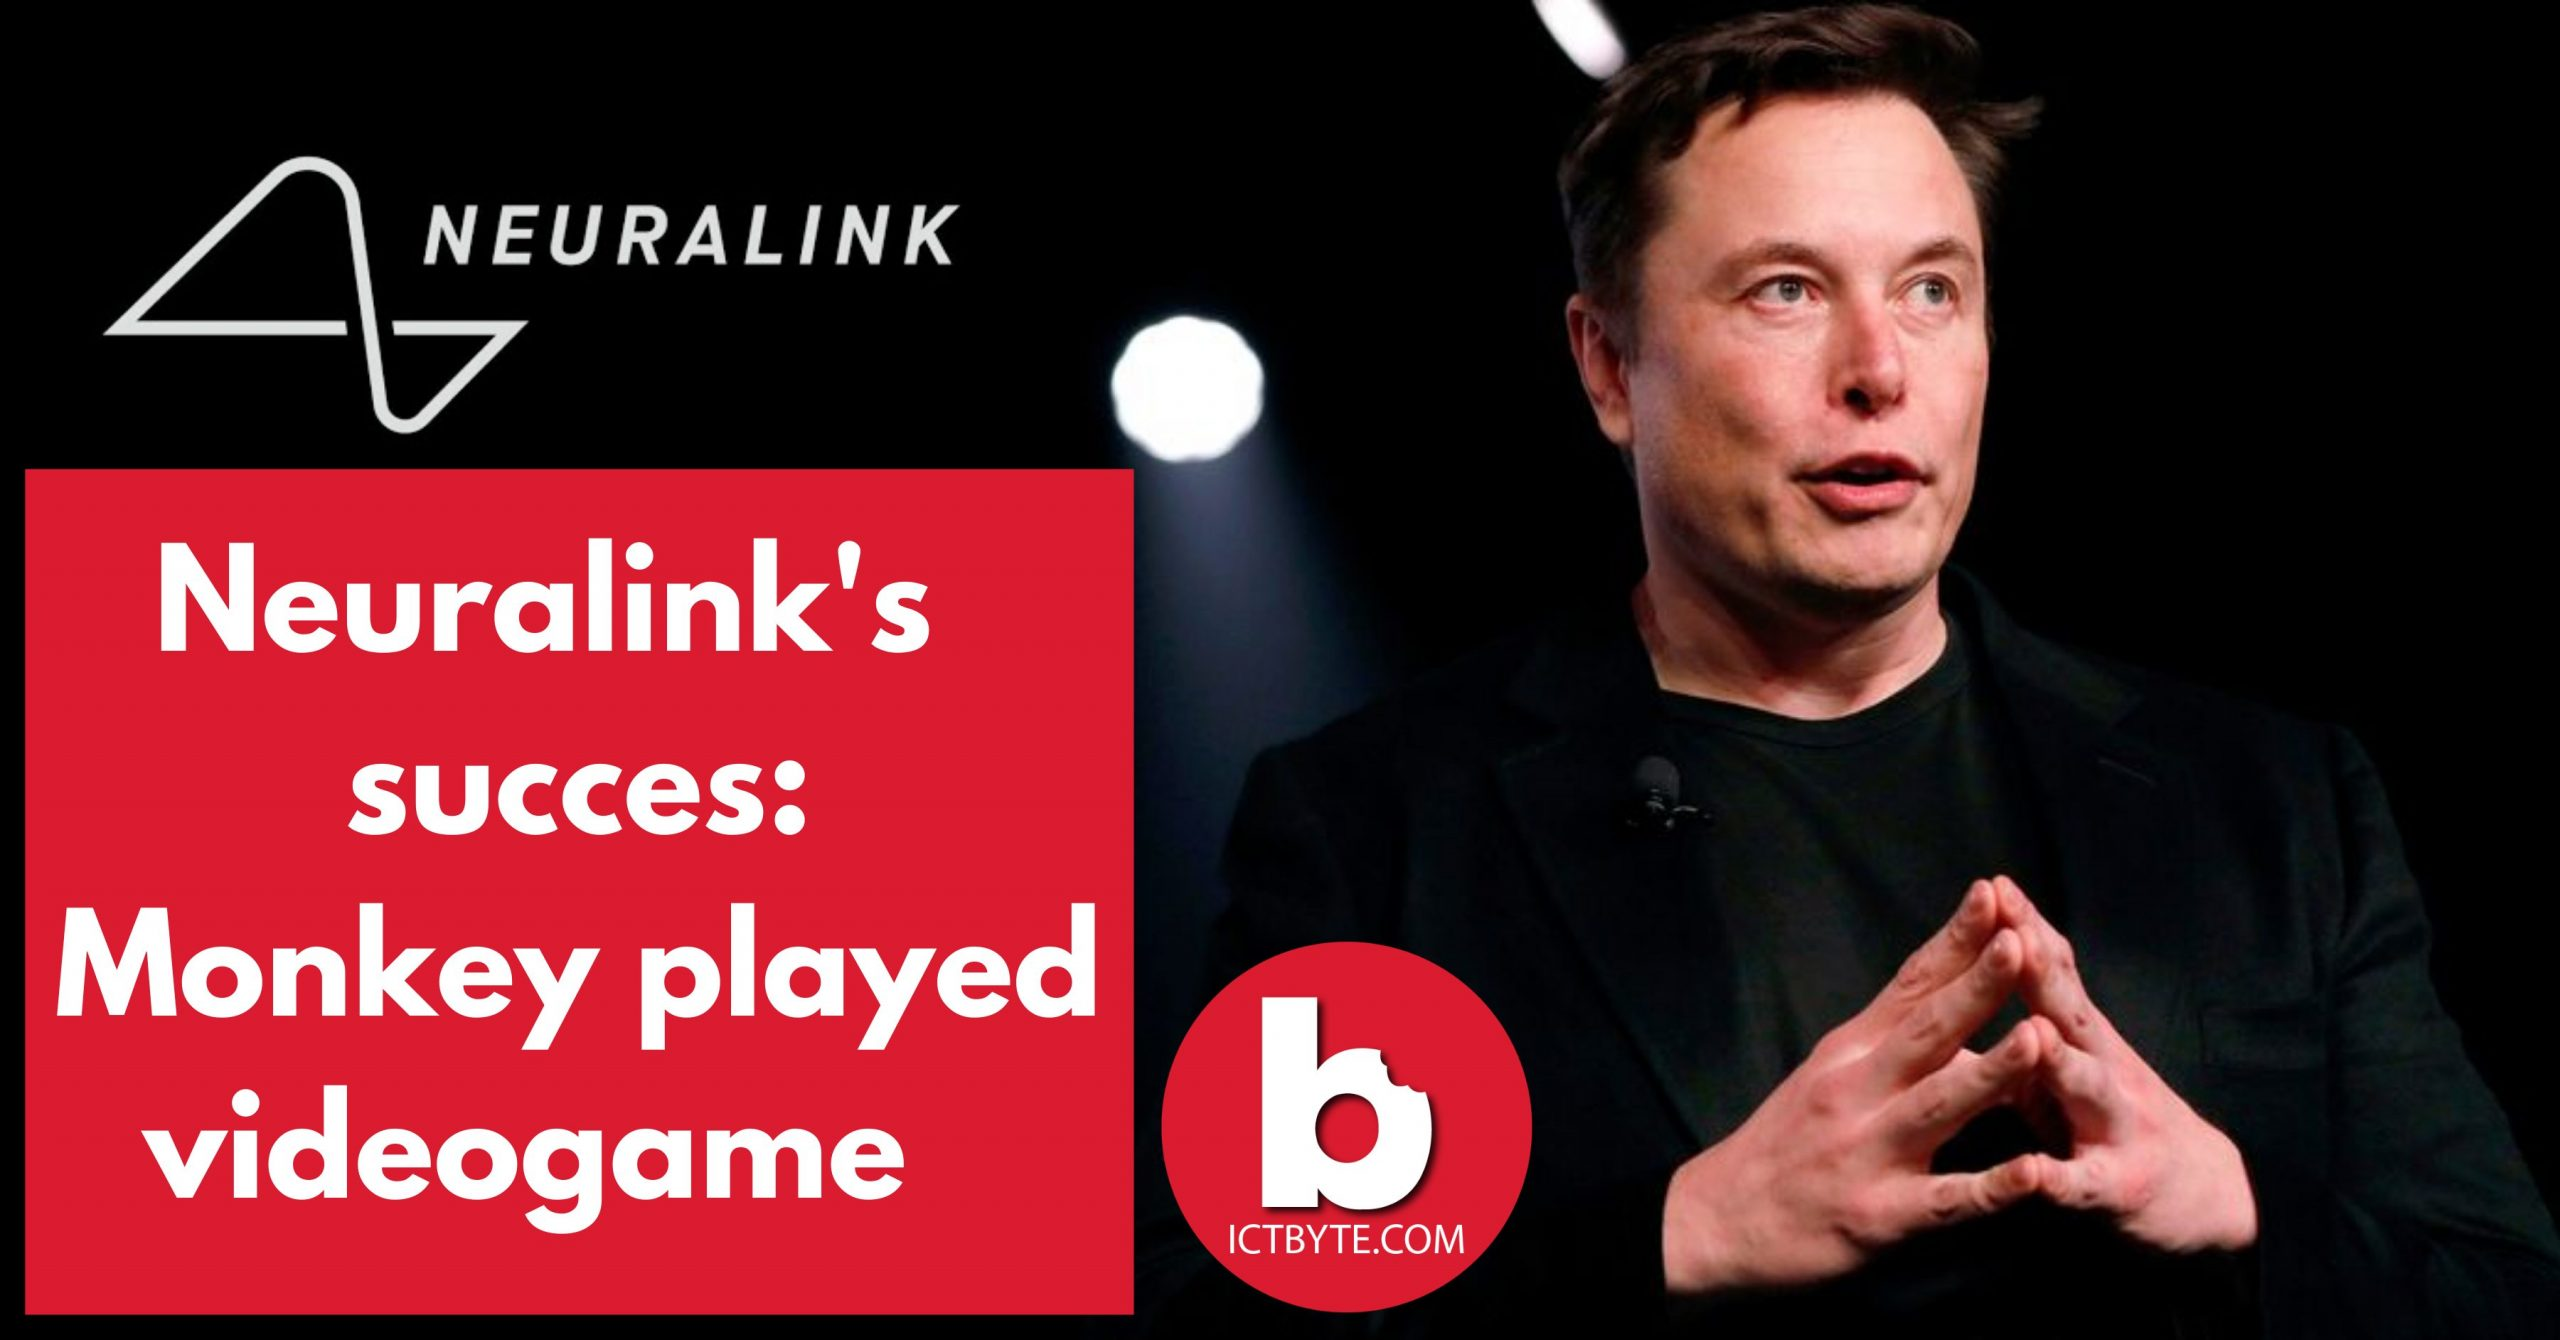 Neuralink is succes Monkey played videogame using own brain